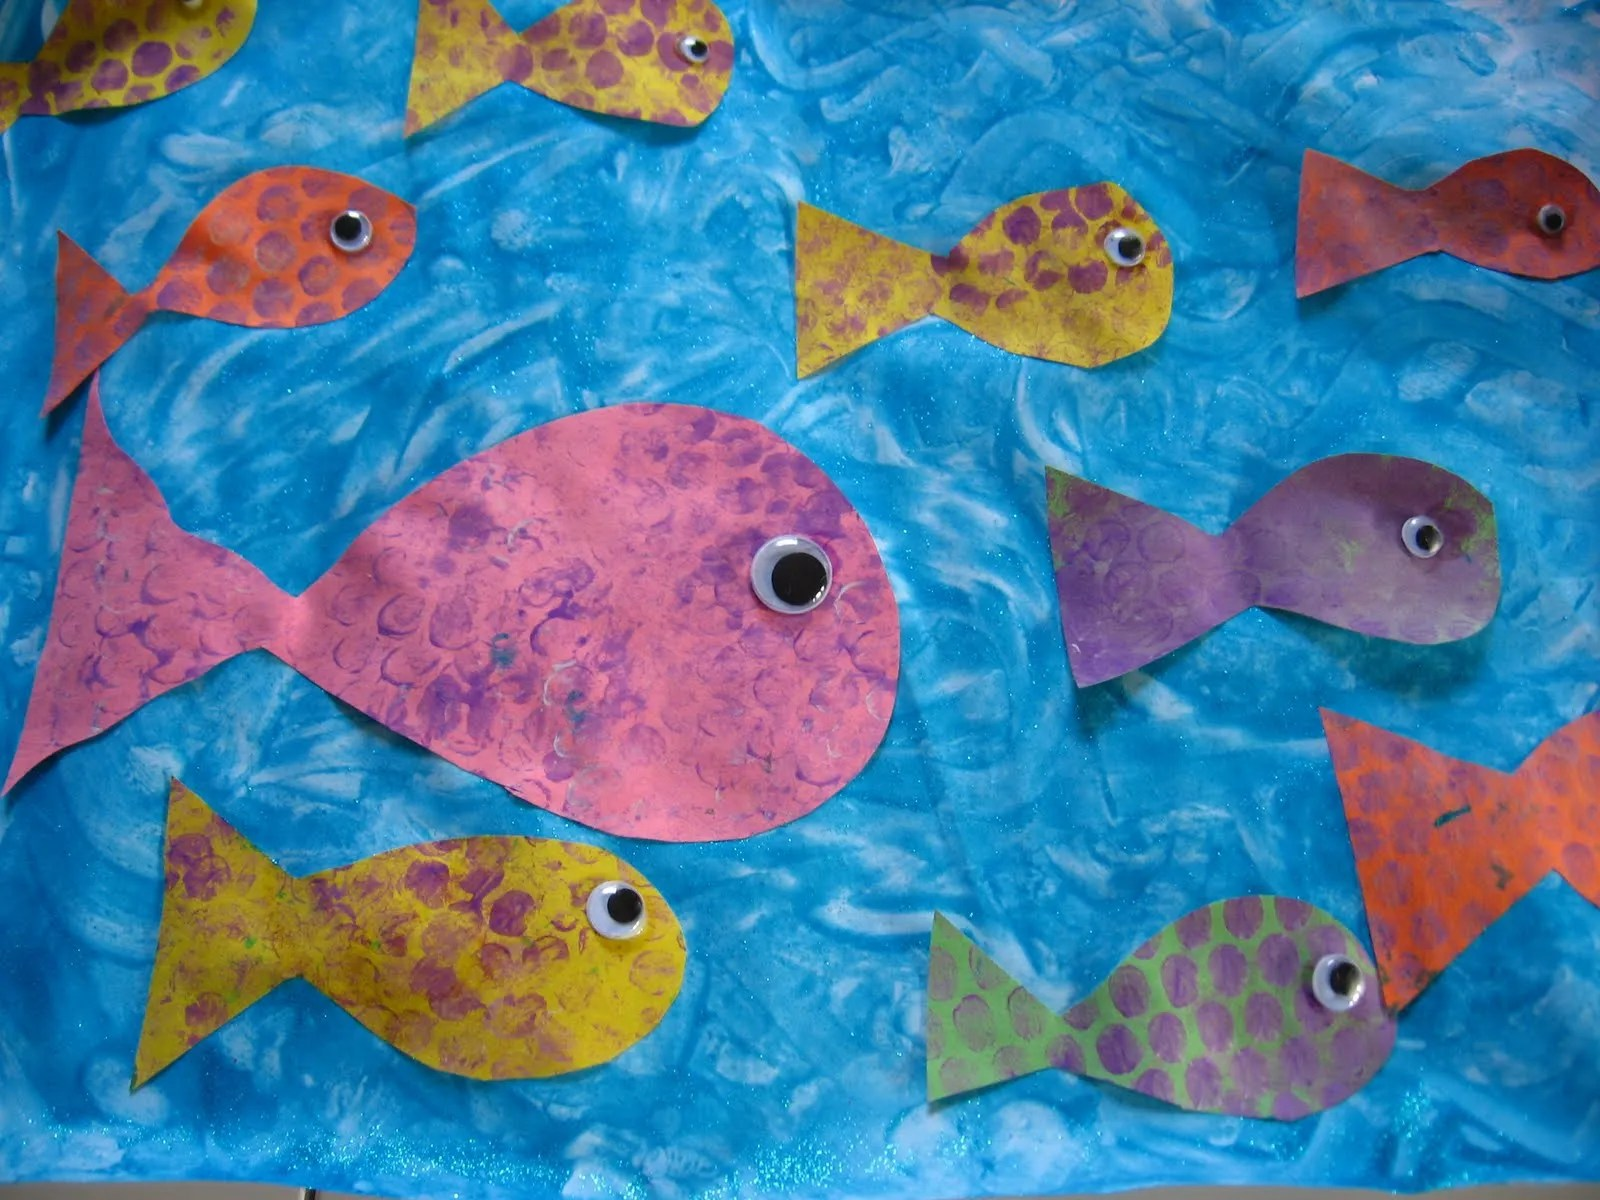 hight resolution of 27 Ocean Activities For Kids - No Time For Flash Cards